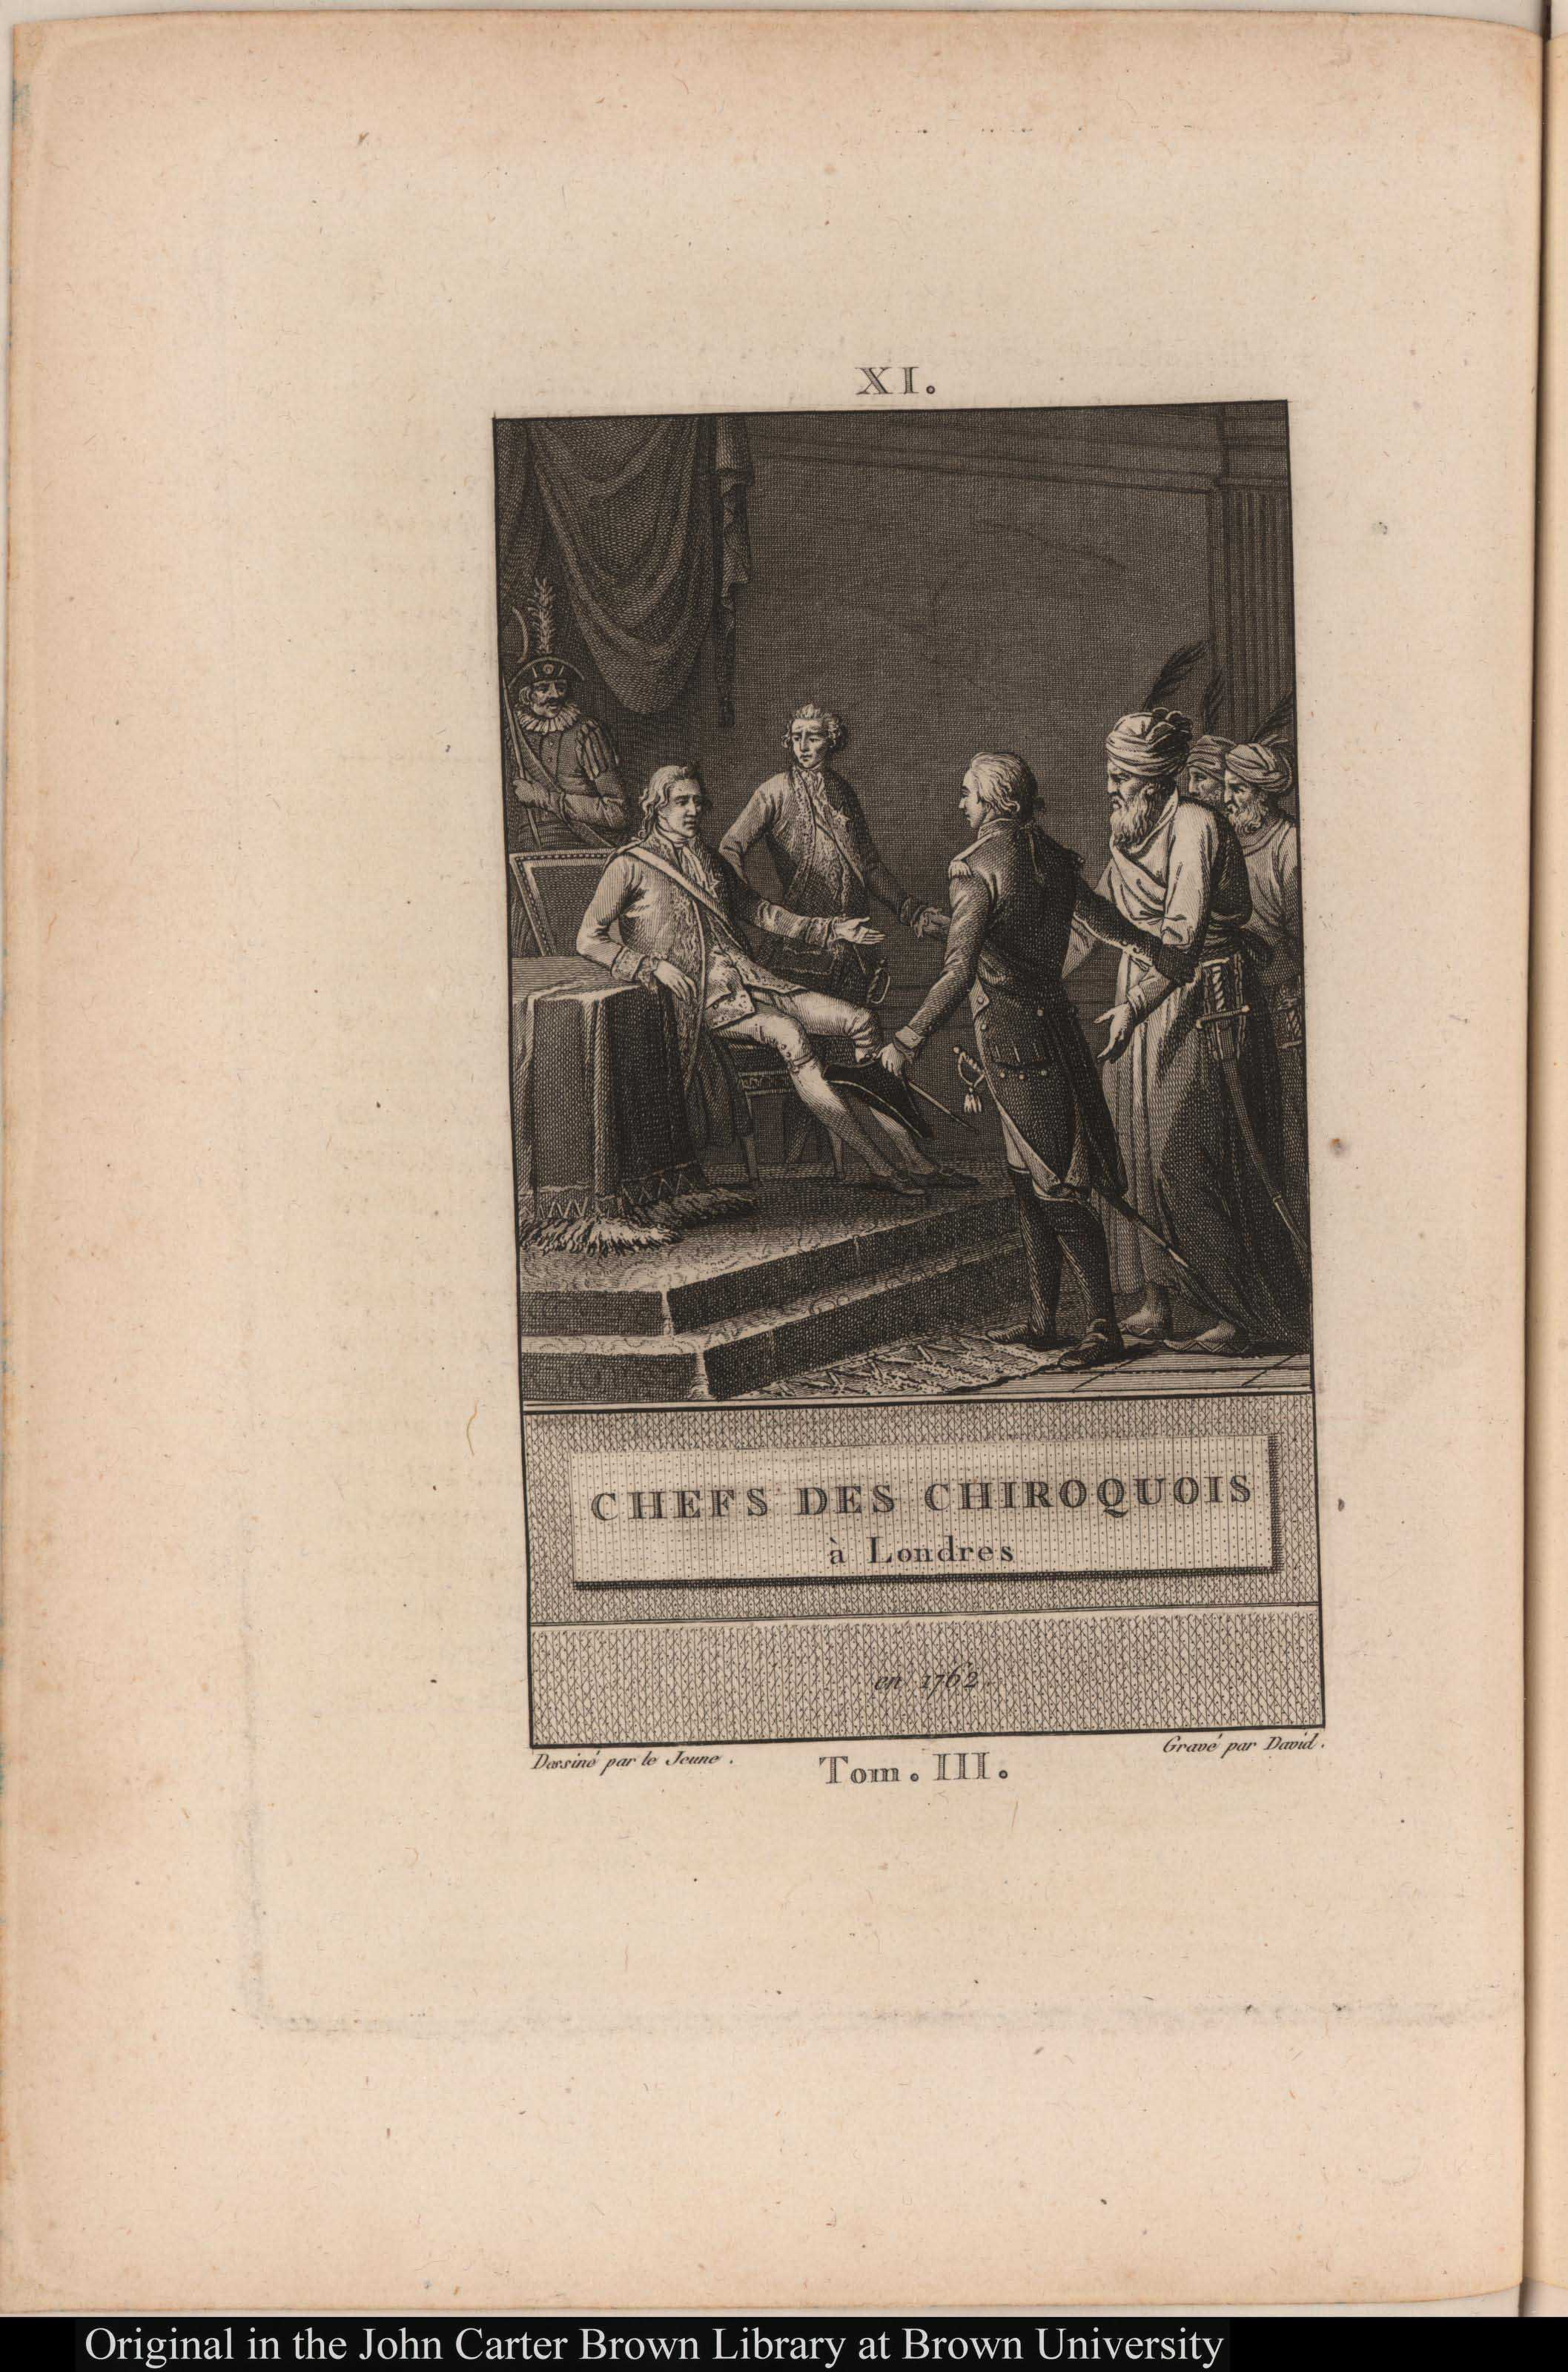 """Chefs des Chiroquois à Londres en 1762"" (Cherokee Chiefs in London in 1762). Plate XI [11] in Histoire d'Angleterre ... Tome troisième, by François Anne David (1800) Chez l'Auteur, F. A. David, rue Pierre-Sarrazin, Paris. Text discusses the arrival of a delegation of native Americans from the Iroquois nation headed by their chief, Outacite or Man-Killer. The delegation, in fact, was a Cherokee delegation undertaken to conclude the Cherokee War. Courtesy of the John Carter Brown Library at Brown University."